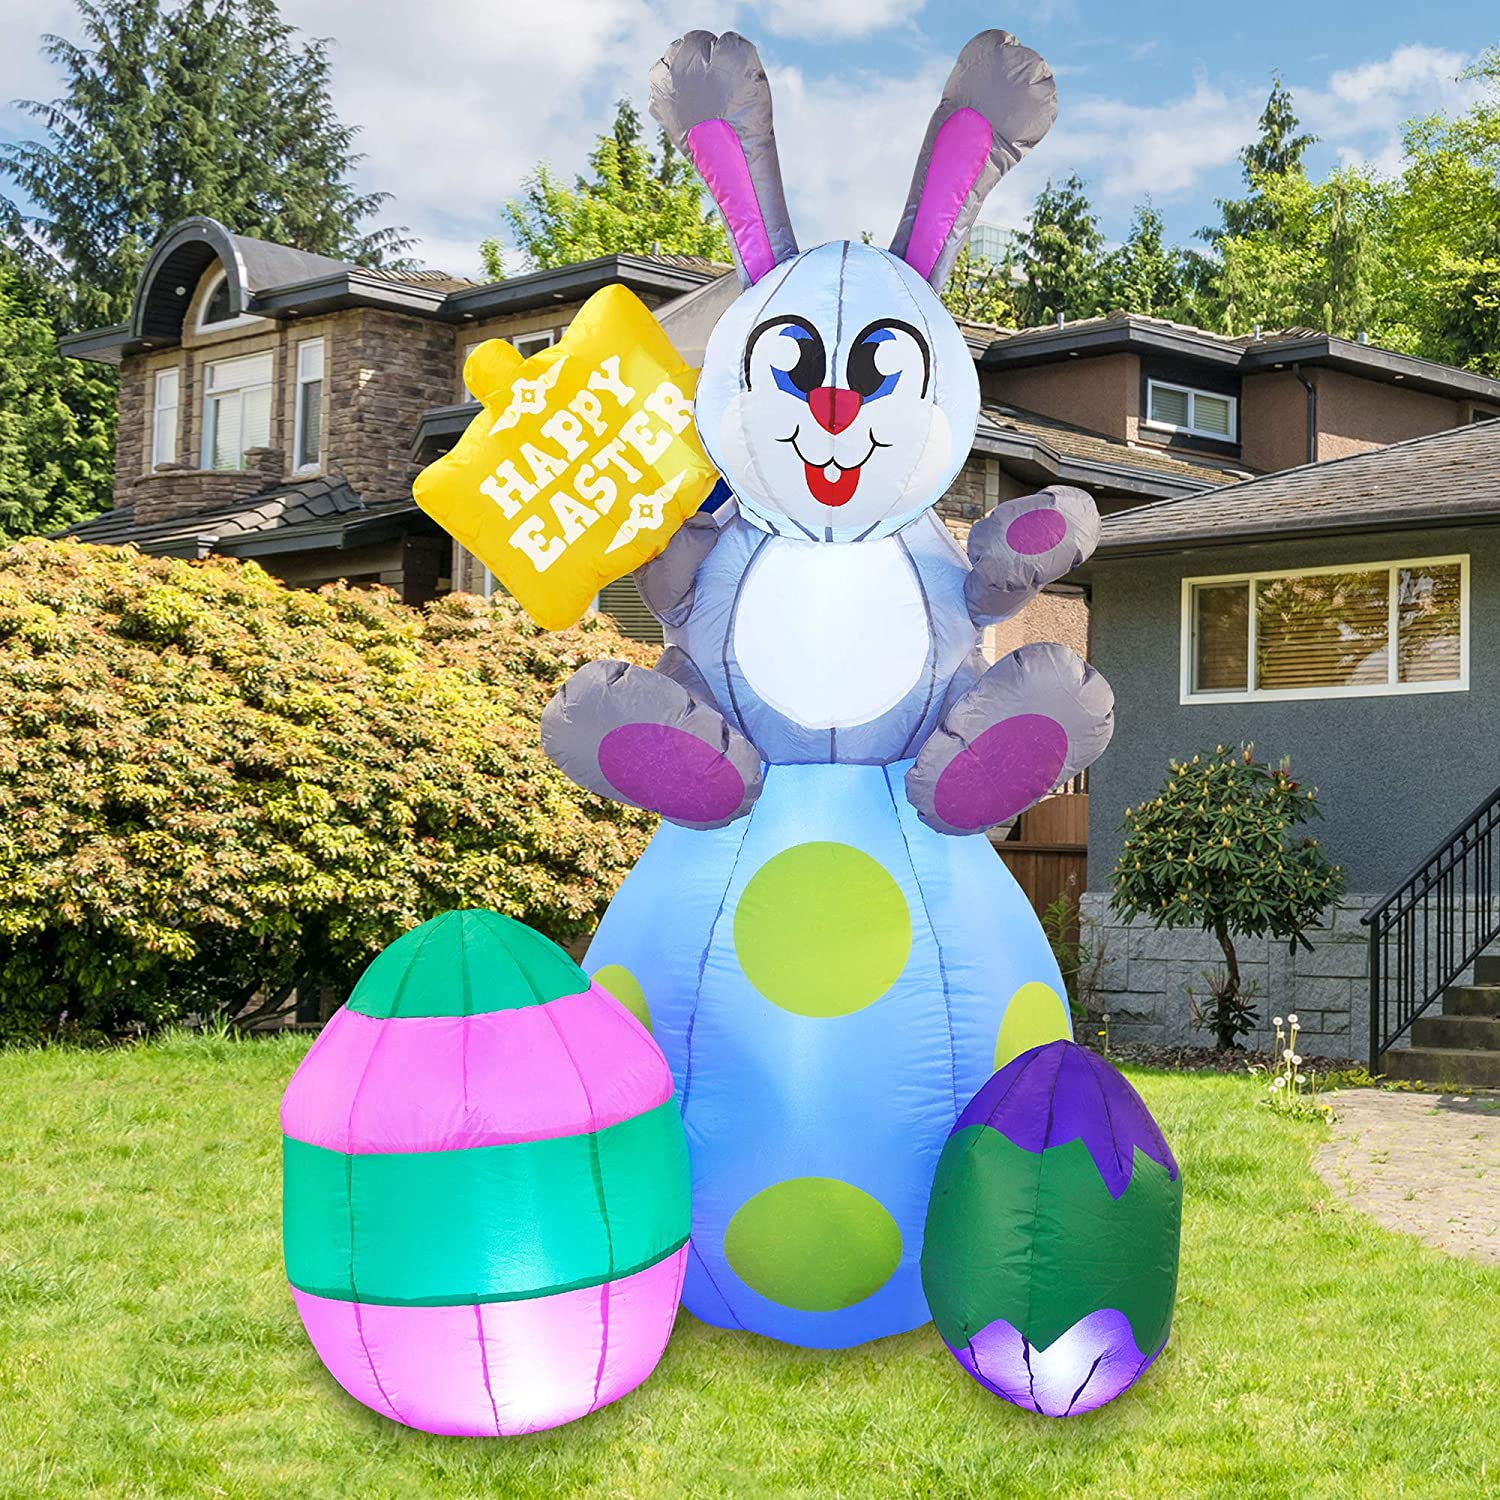 Joiedomi Easter Inflatable Outdoor Decoration 6 ft Tall Easter Bunny & Eggs with Build-in LEDs Blow Up Inflatables for Easter Holiday Party Indoor, Yard, Garden, Lawn Fall Decor.